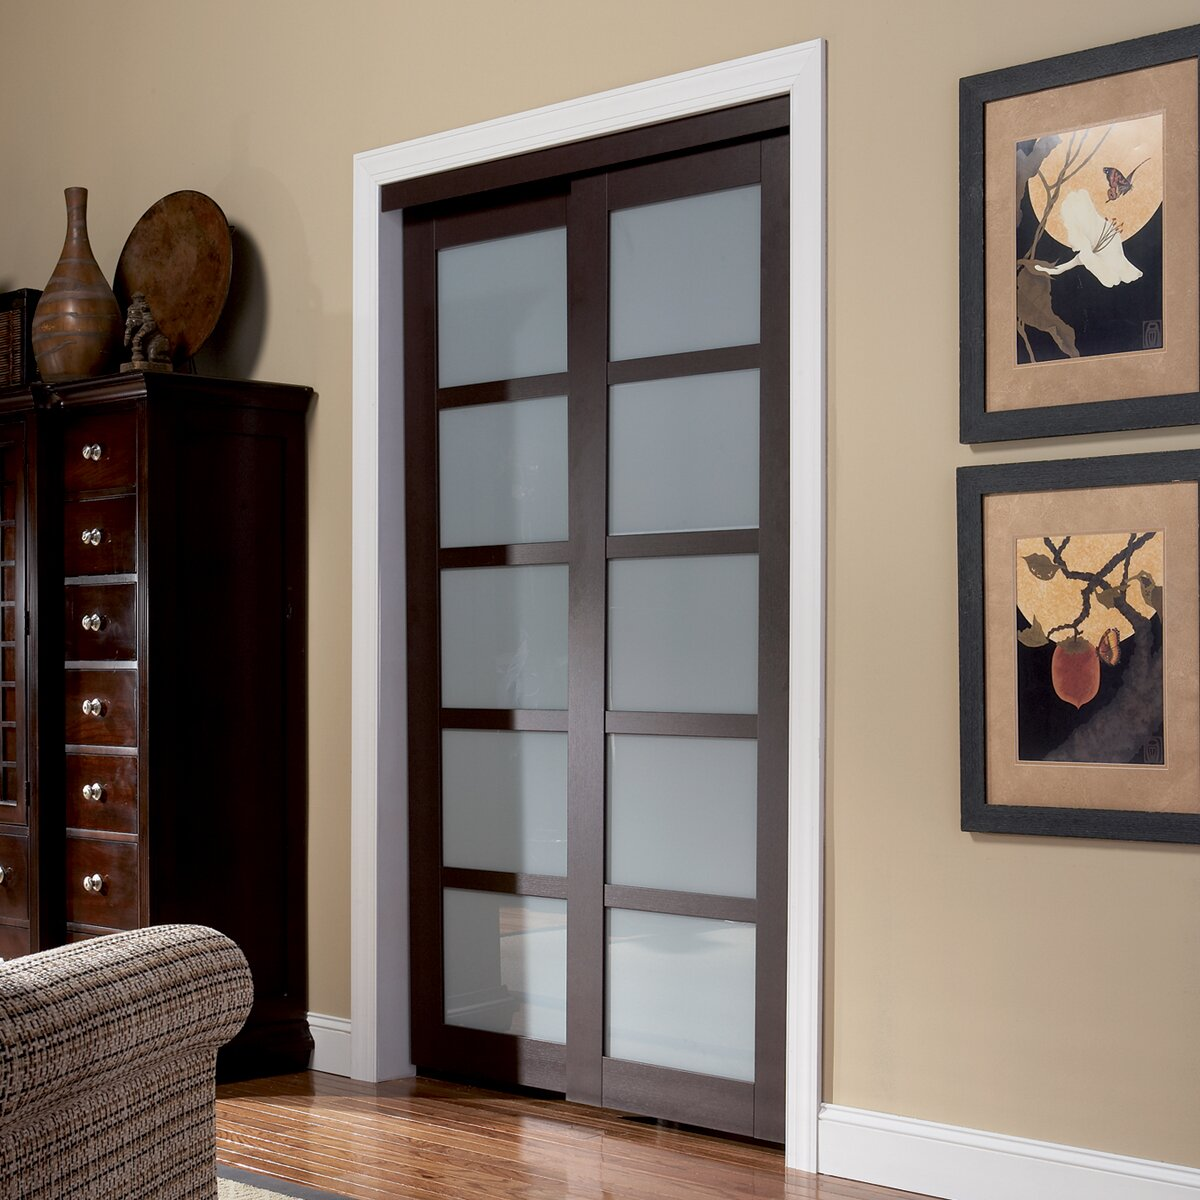 erias home designs baldarassario 2 panel painted sliding interior door reviews wayfair. Black Bedroom Furniture Sets. Home Design Ideas